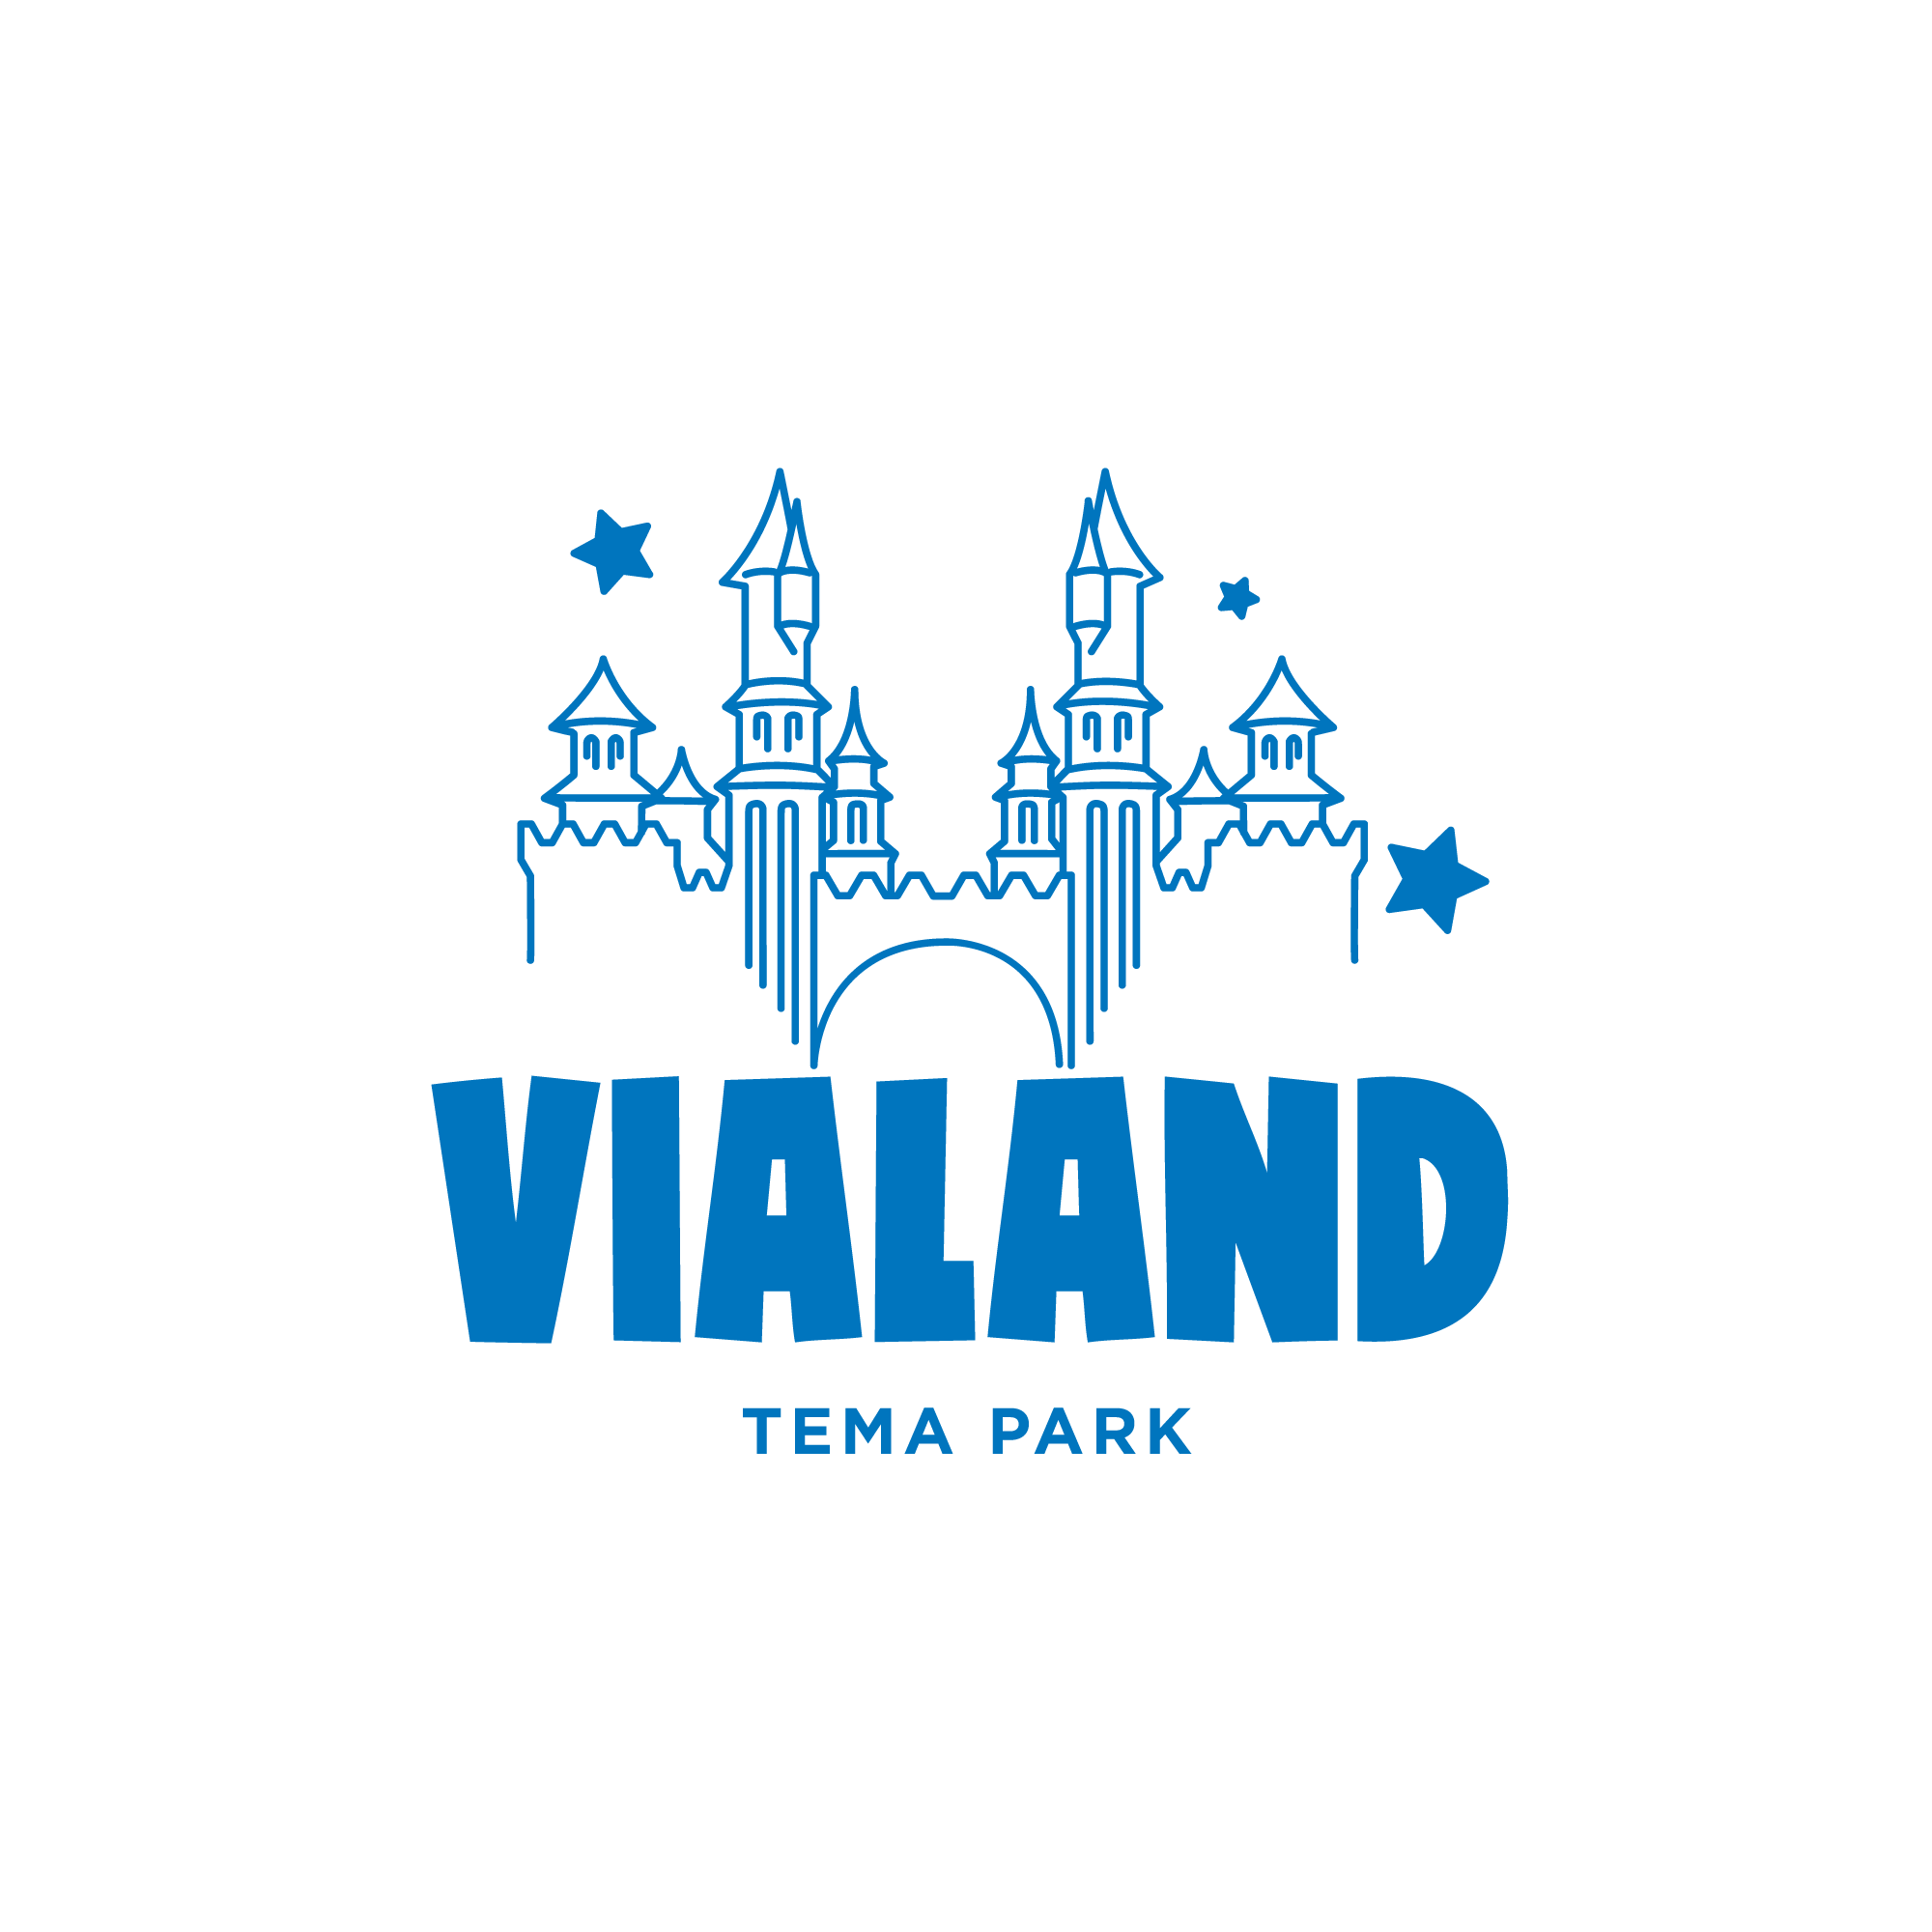 İsfanbul (Vialand) - Jungle - Zindan - Safari